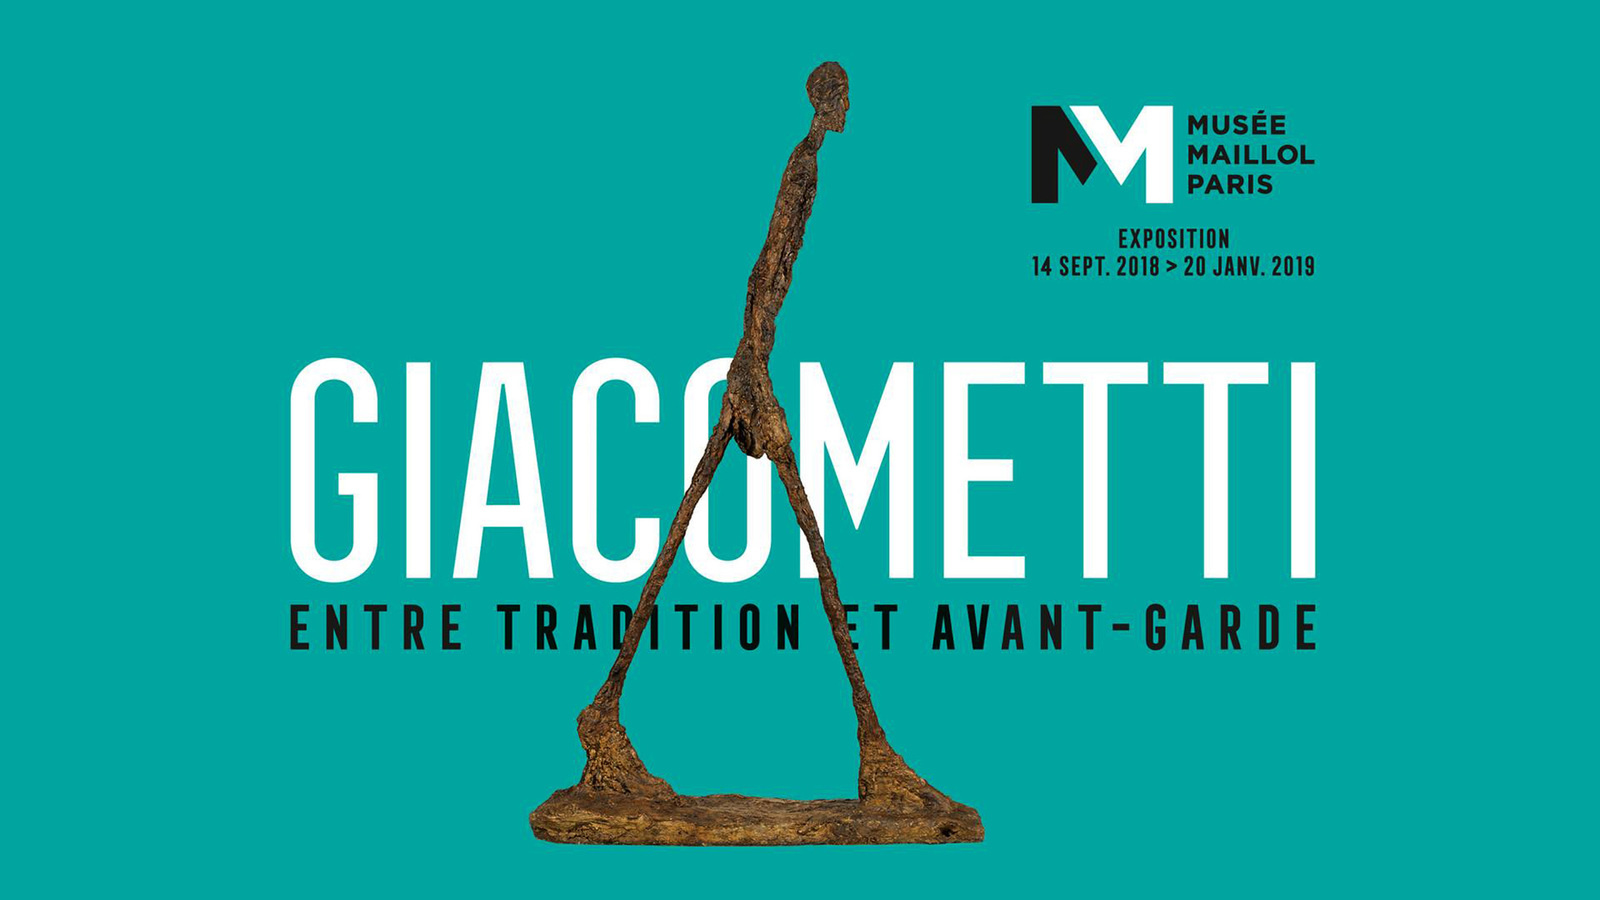 Giacometti, between tradition and avant-garde